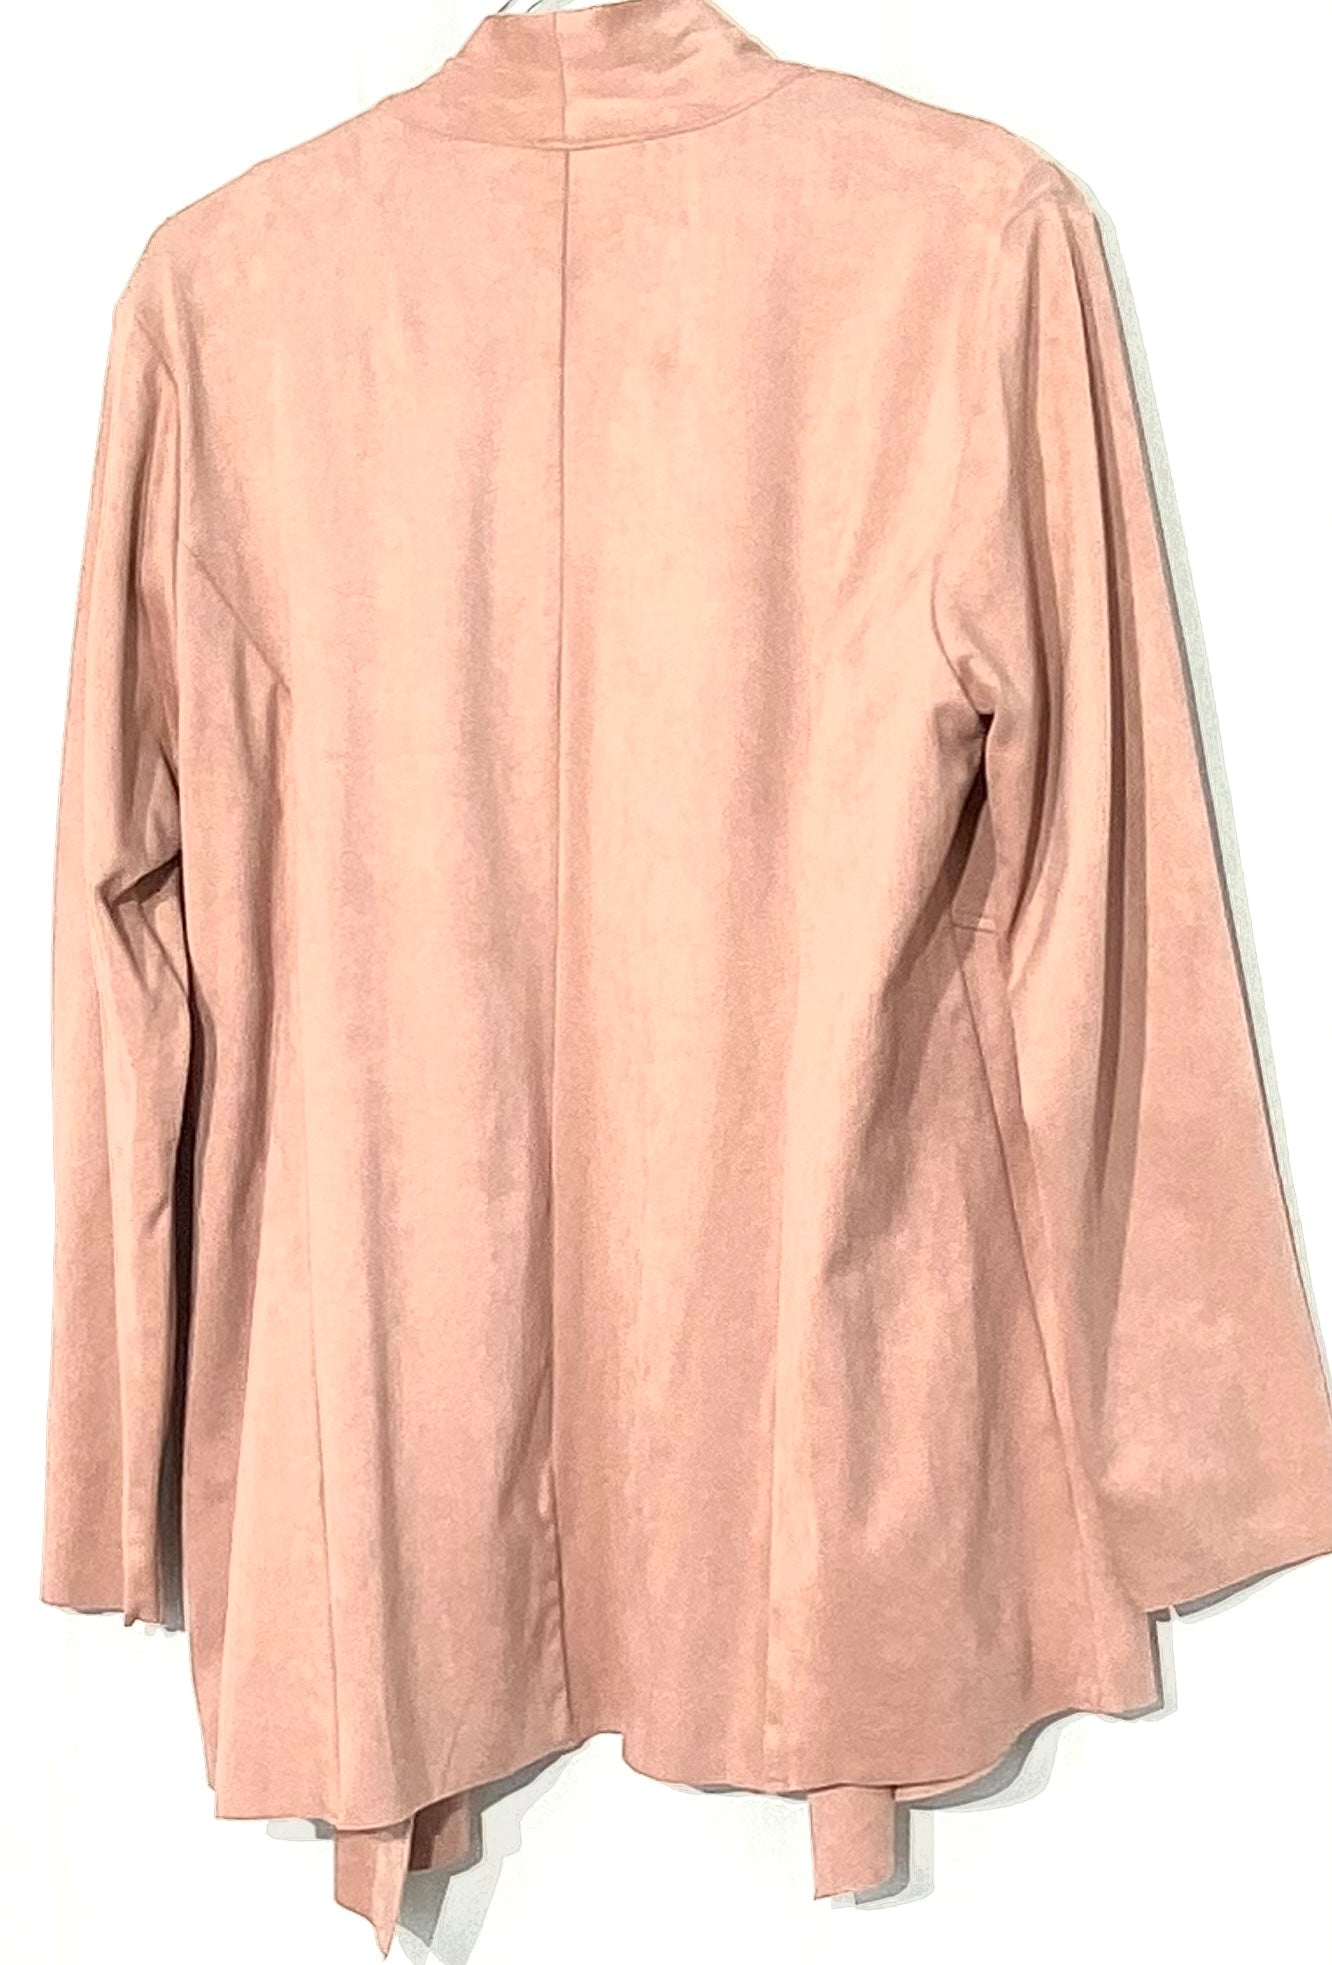 Photo #1 - BRAND: STYLE AND COMPANY <BR>STYLE: COVER LIGHTWEIGHT <BR>COLOR: LIGHT PINK <BR>SIZE: L/XL <BR>SKU: 262-26275-68728<BR>12% SPANDEX <BR>SUEDE LEATHER LOOK